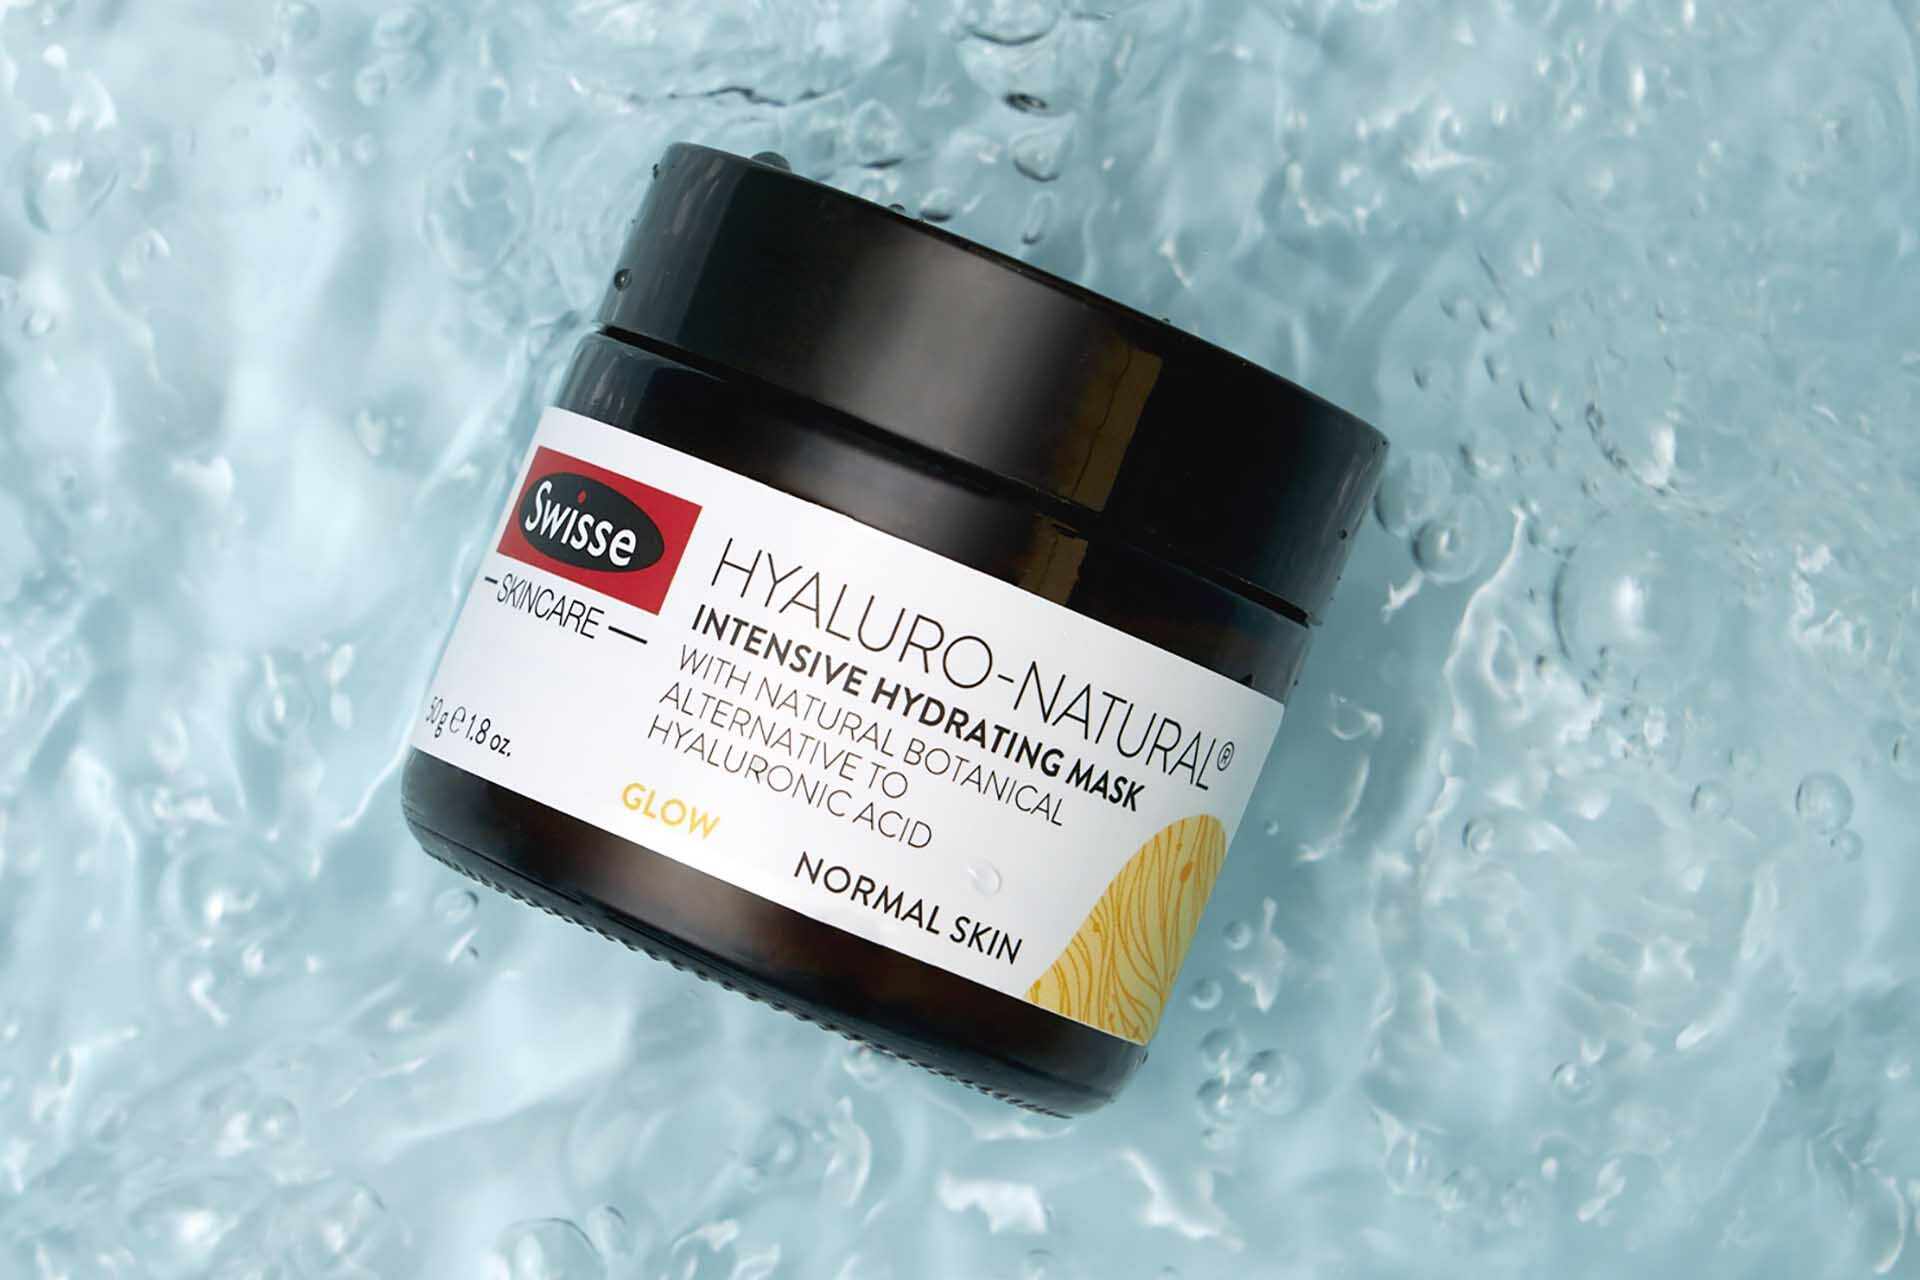 Swisse Skincare Hyaluro-Natural Intensive Hydrating Mask